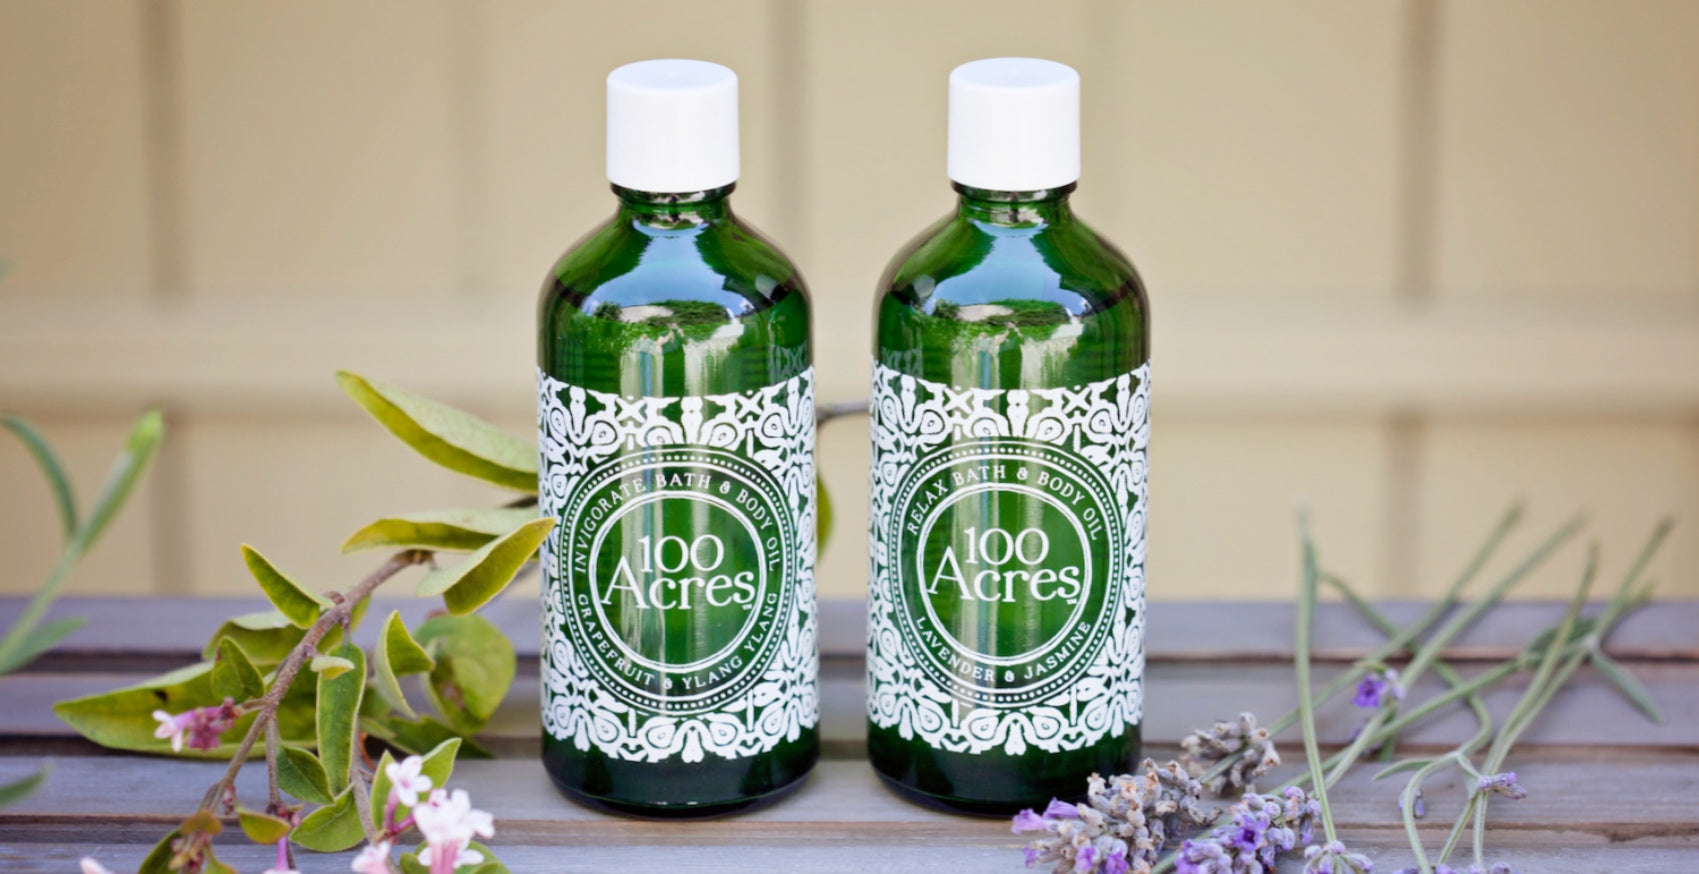 100% natural ingredients, bath & body oil - 100 Acres Apothecary